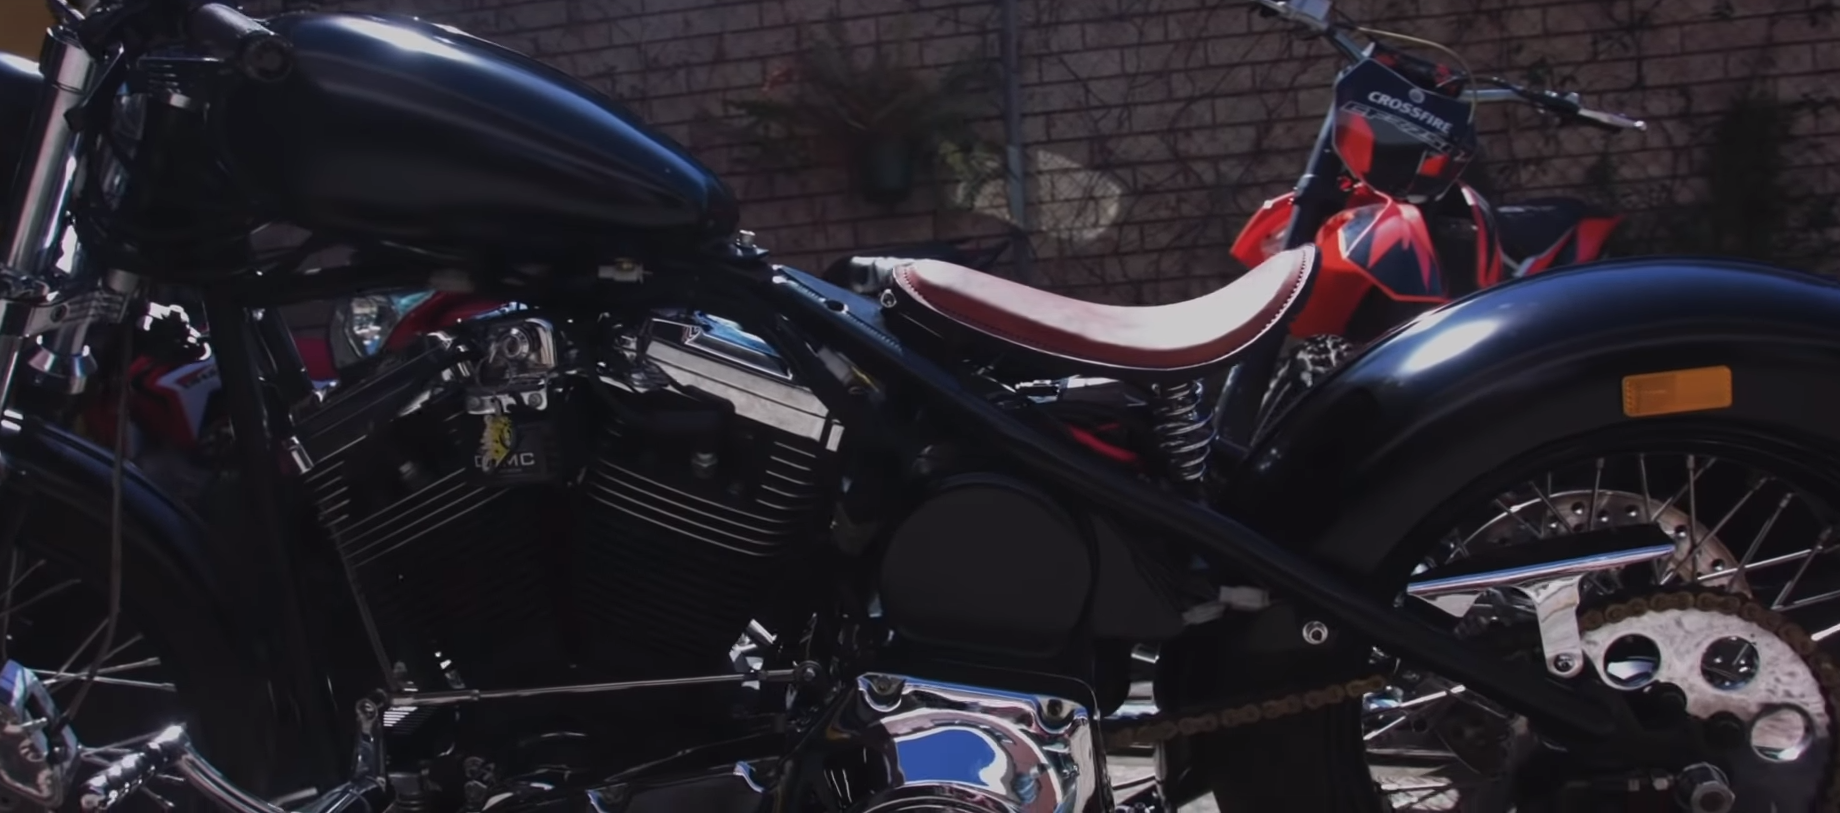 DVMC motorbikes sydney Handcrafted bike movie